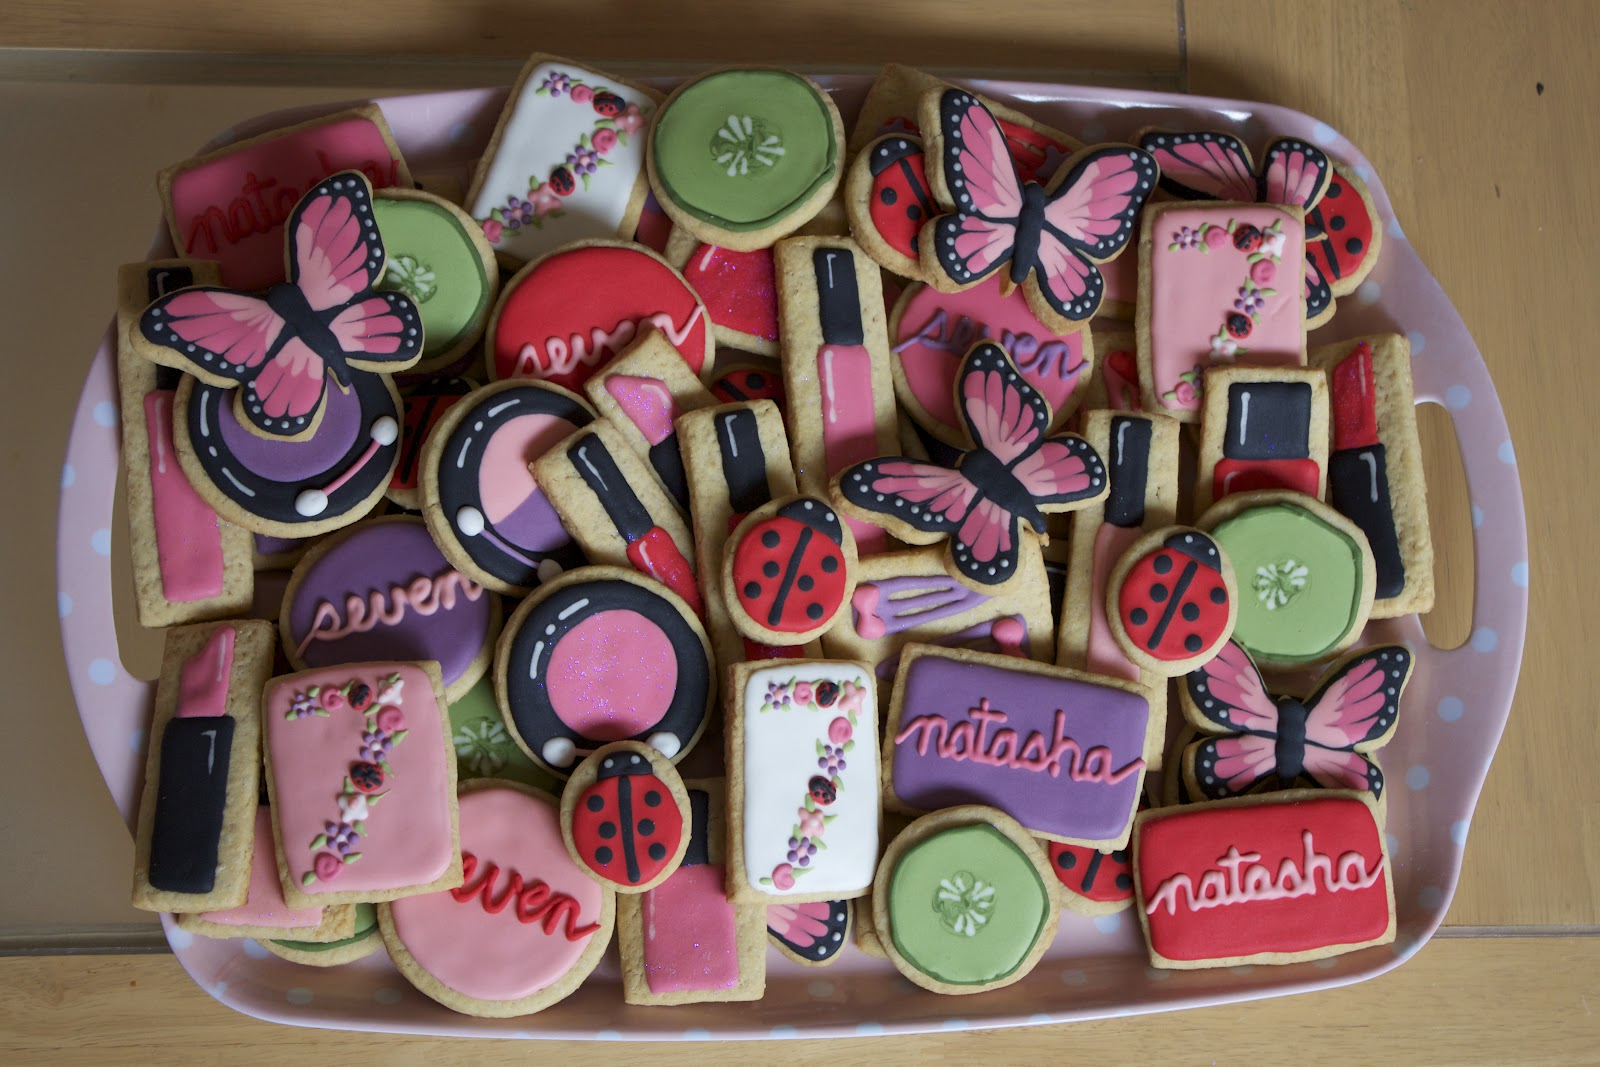 Elaine S Sweet Life Other Baked Goods And Foods